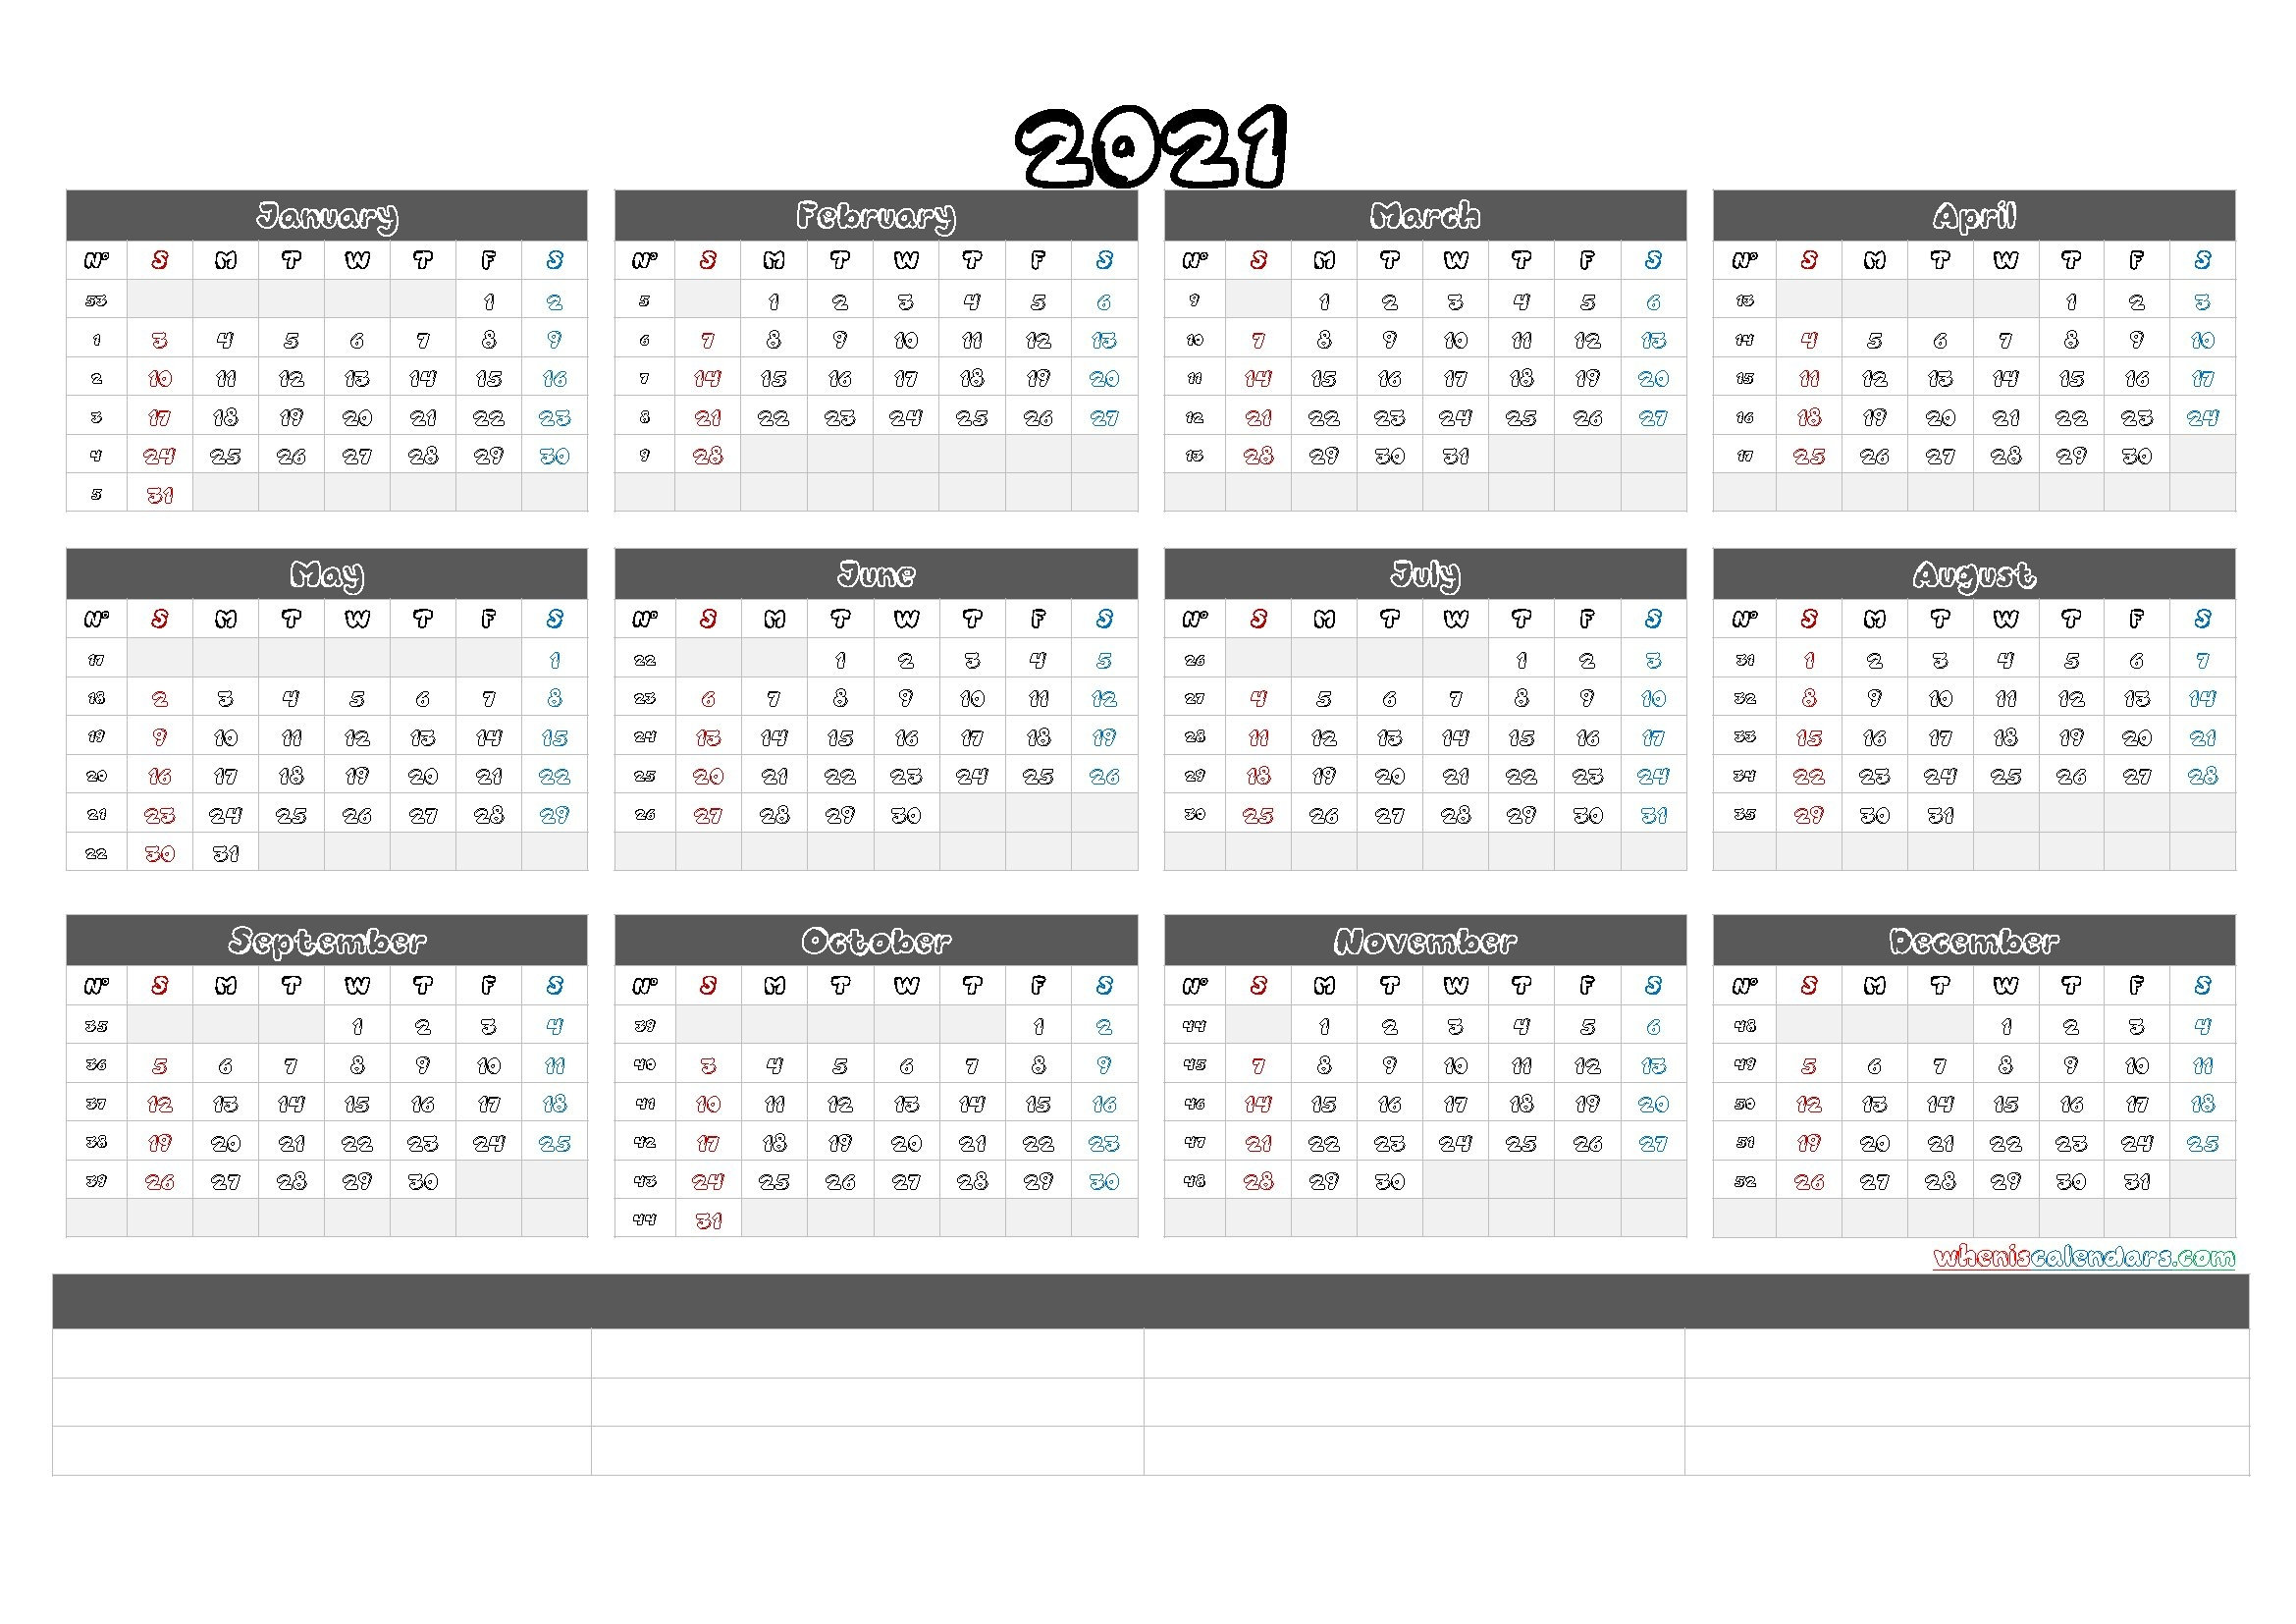 Free Printable 2021 Yearly Calendar With Week Numbers (6 Templates) - Free Printable 2020 within Calendar With Numbered Days 2021